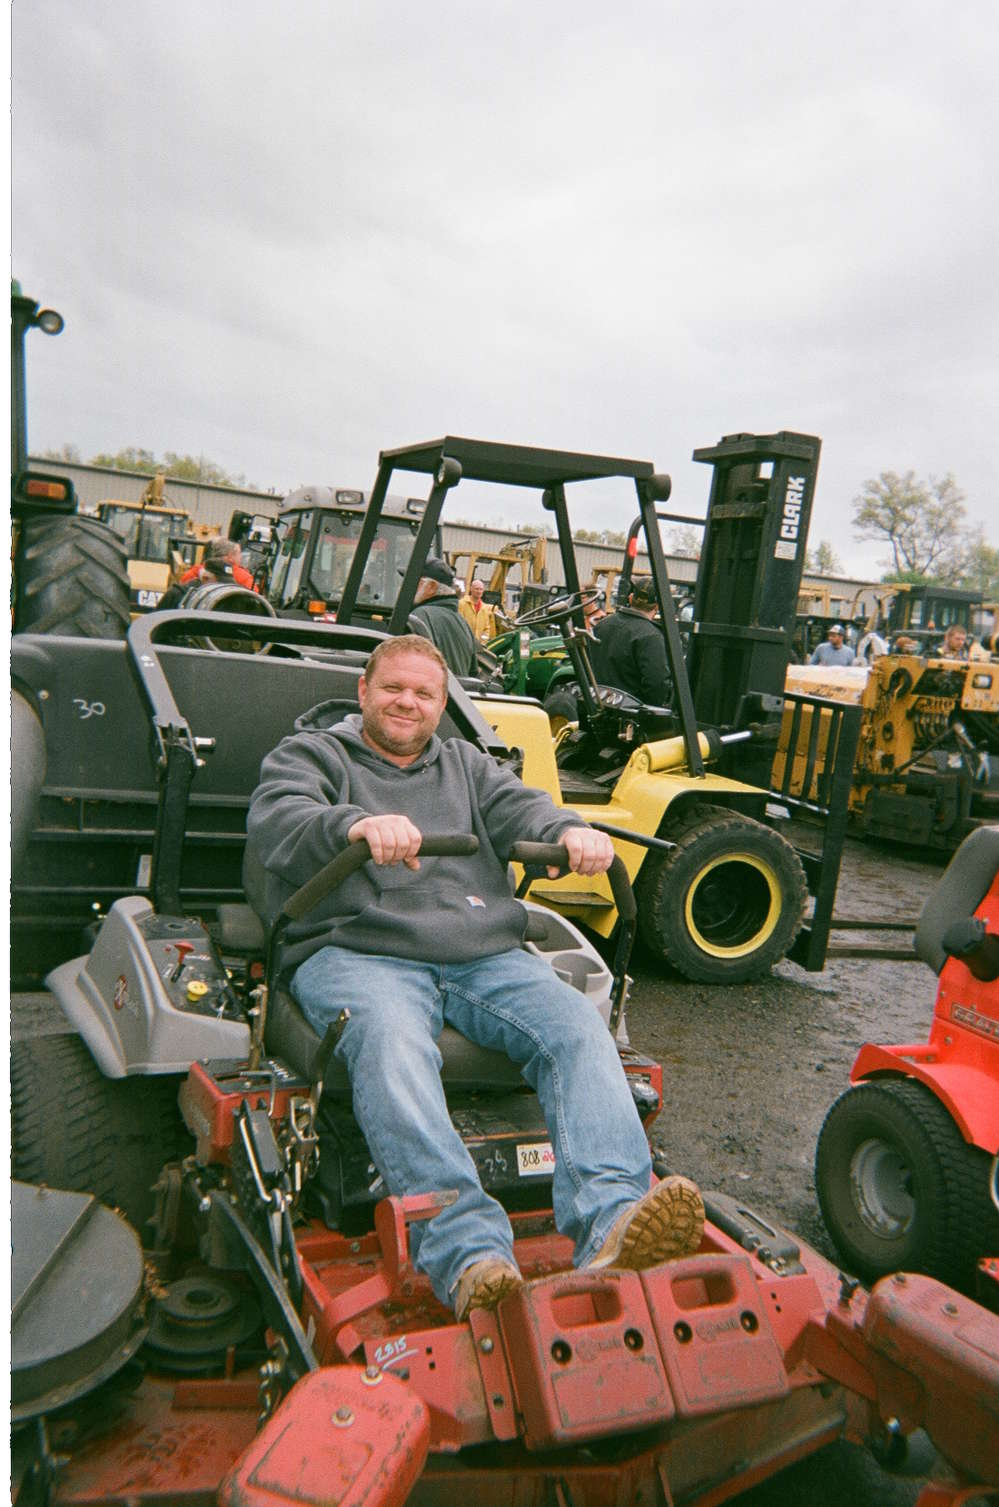 Dan Cusack of DC Rentals of Branford, Conn., tries out a lawn mower.